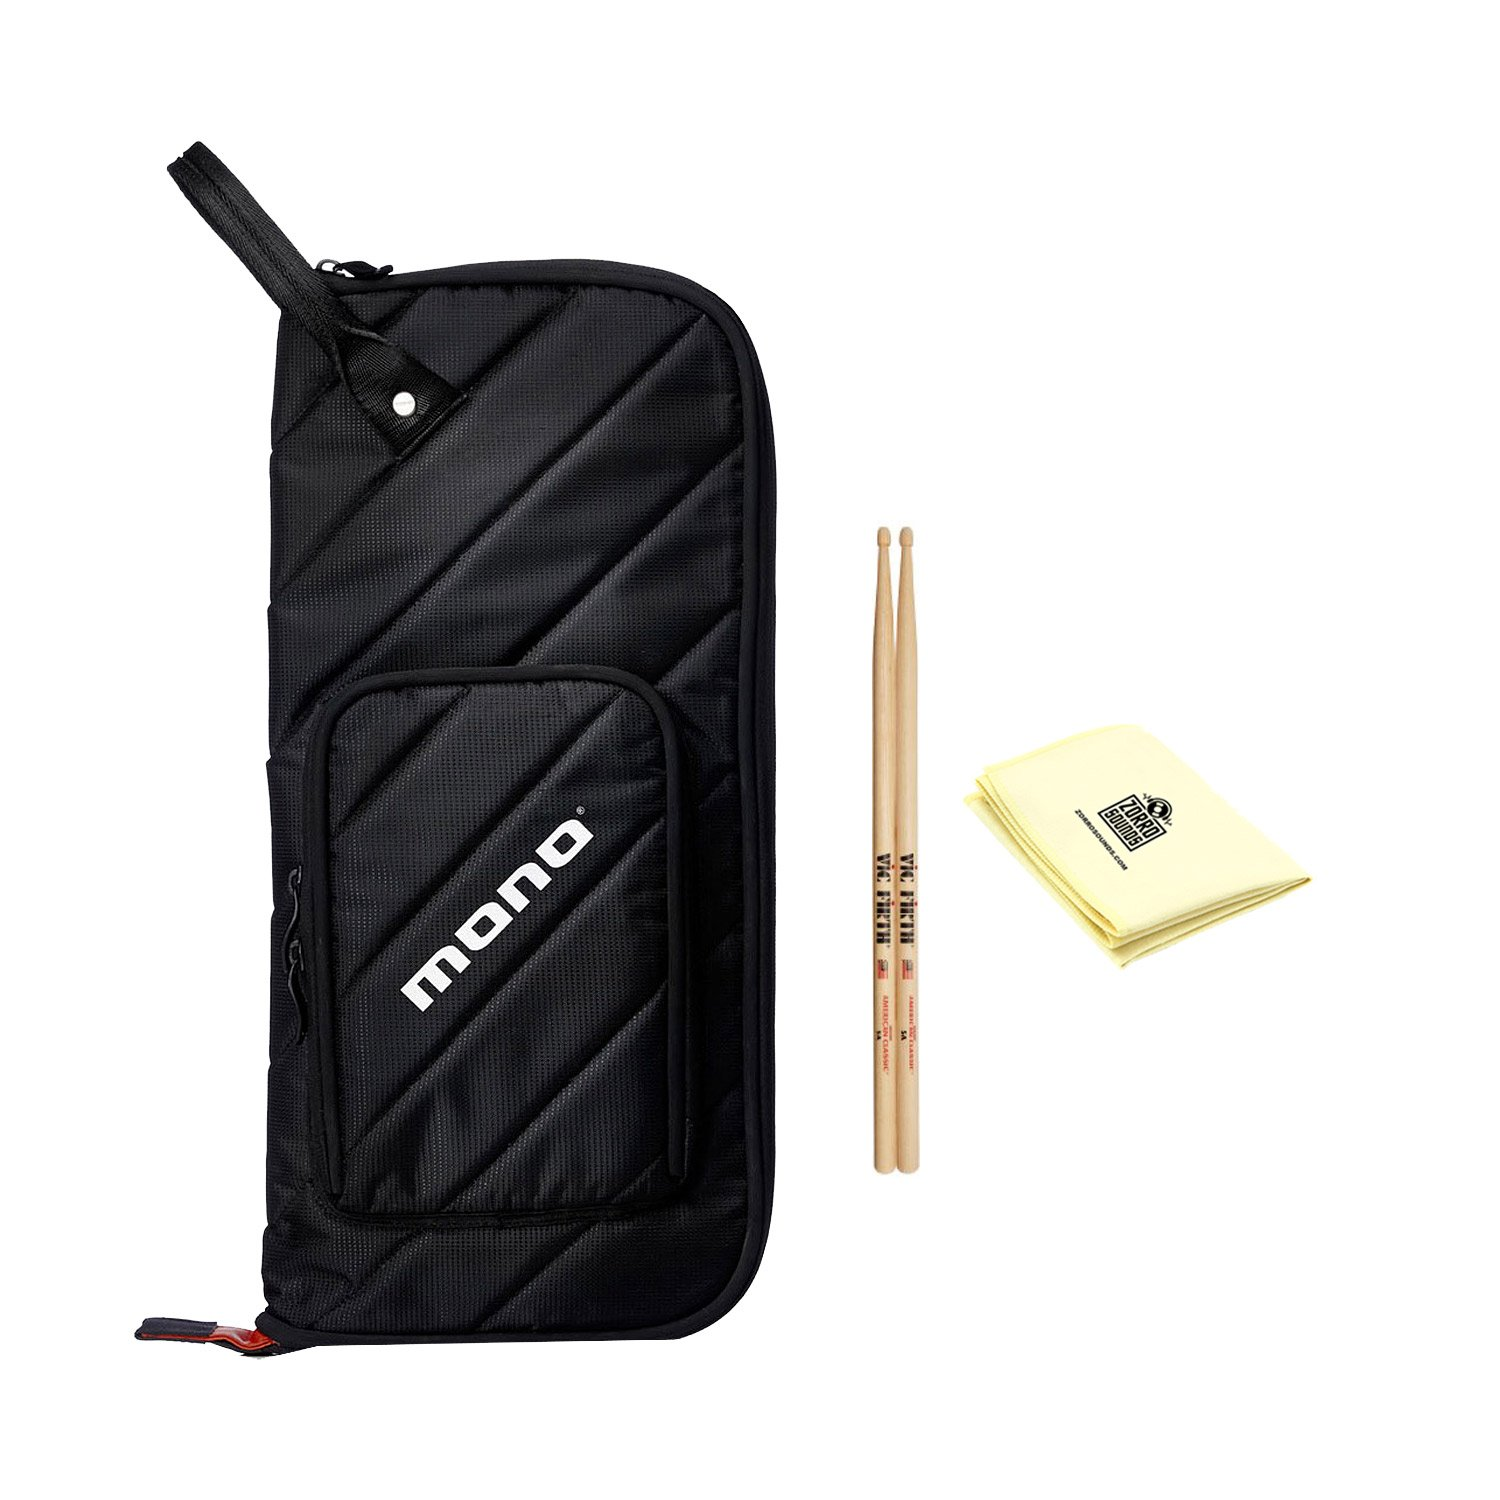 Mono M80-ST-BLK-U Drumstick Case in Black with Zildjian Vic Firth American Classic 5A Drum Sticks and Custom Designed Instrument Cloth